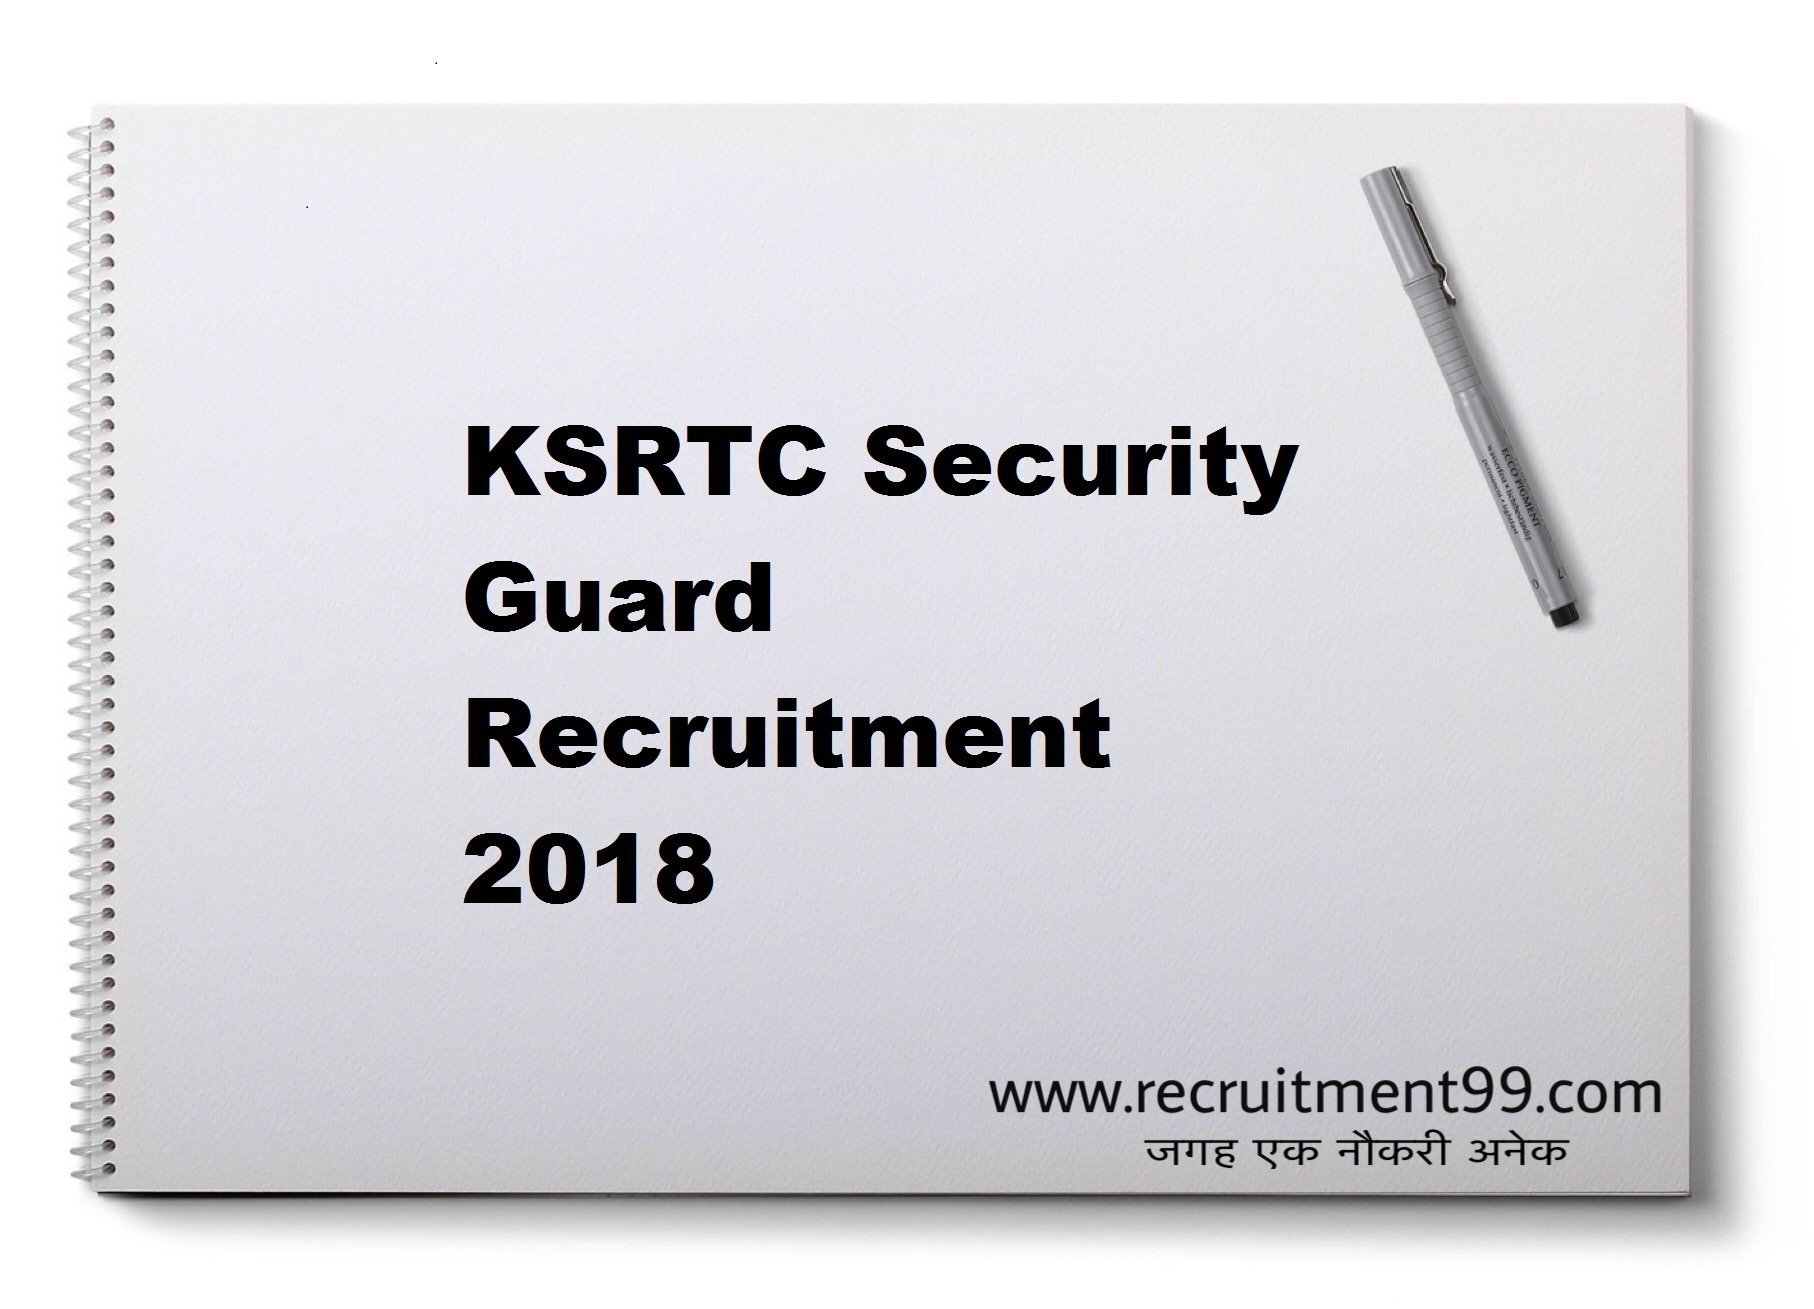 KSRTC Security Guard Recruitment Admit Card Result 2018